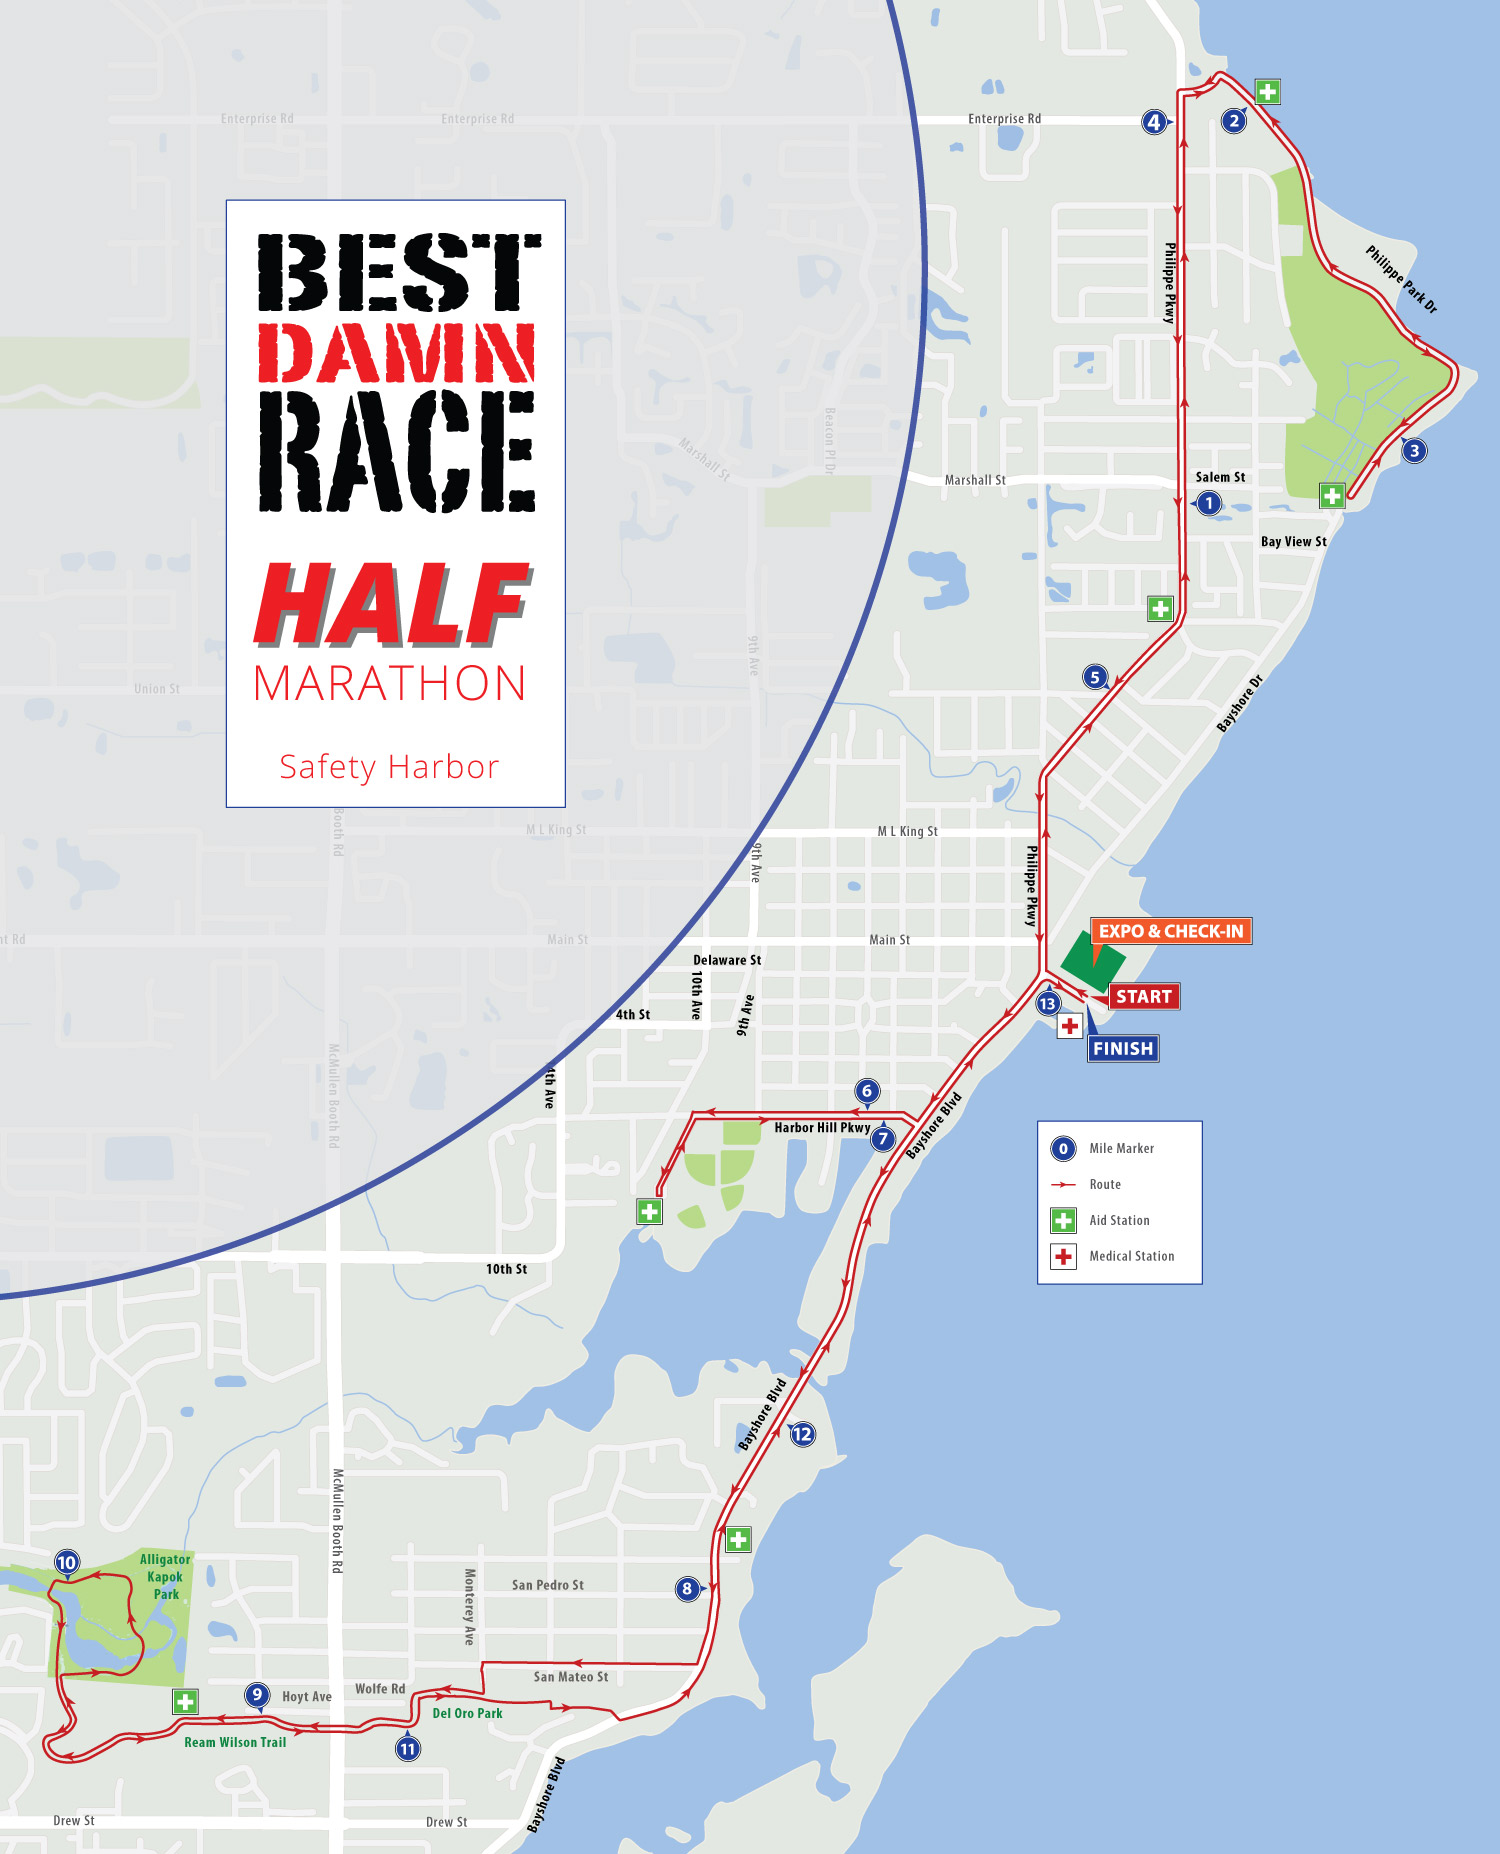 Half Marathon - Safety Harbor